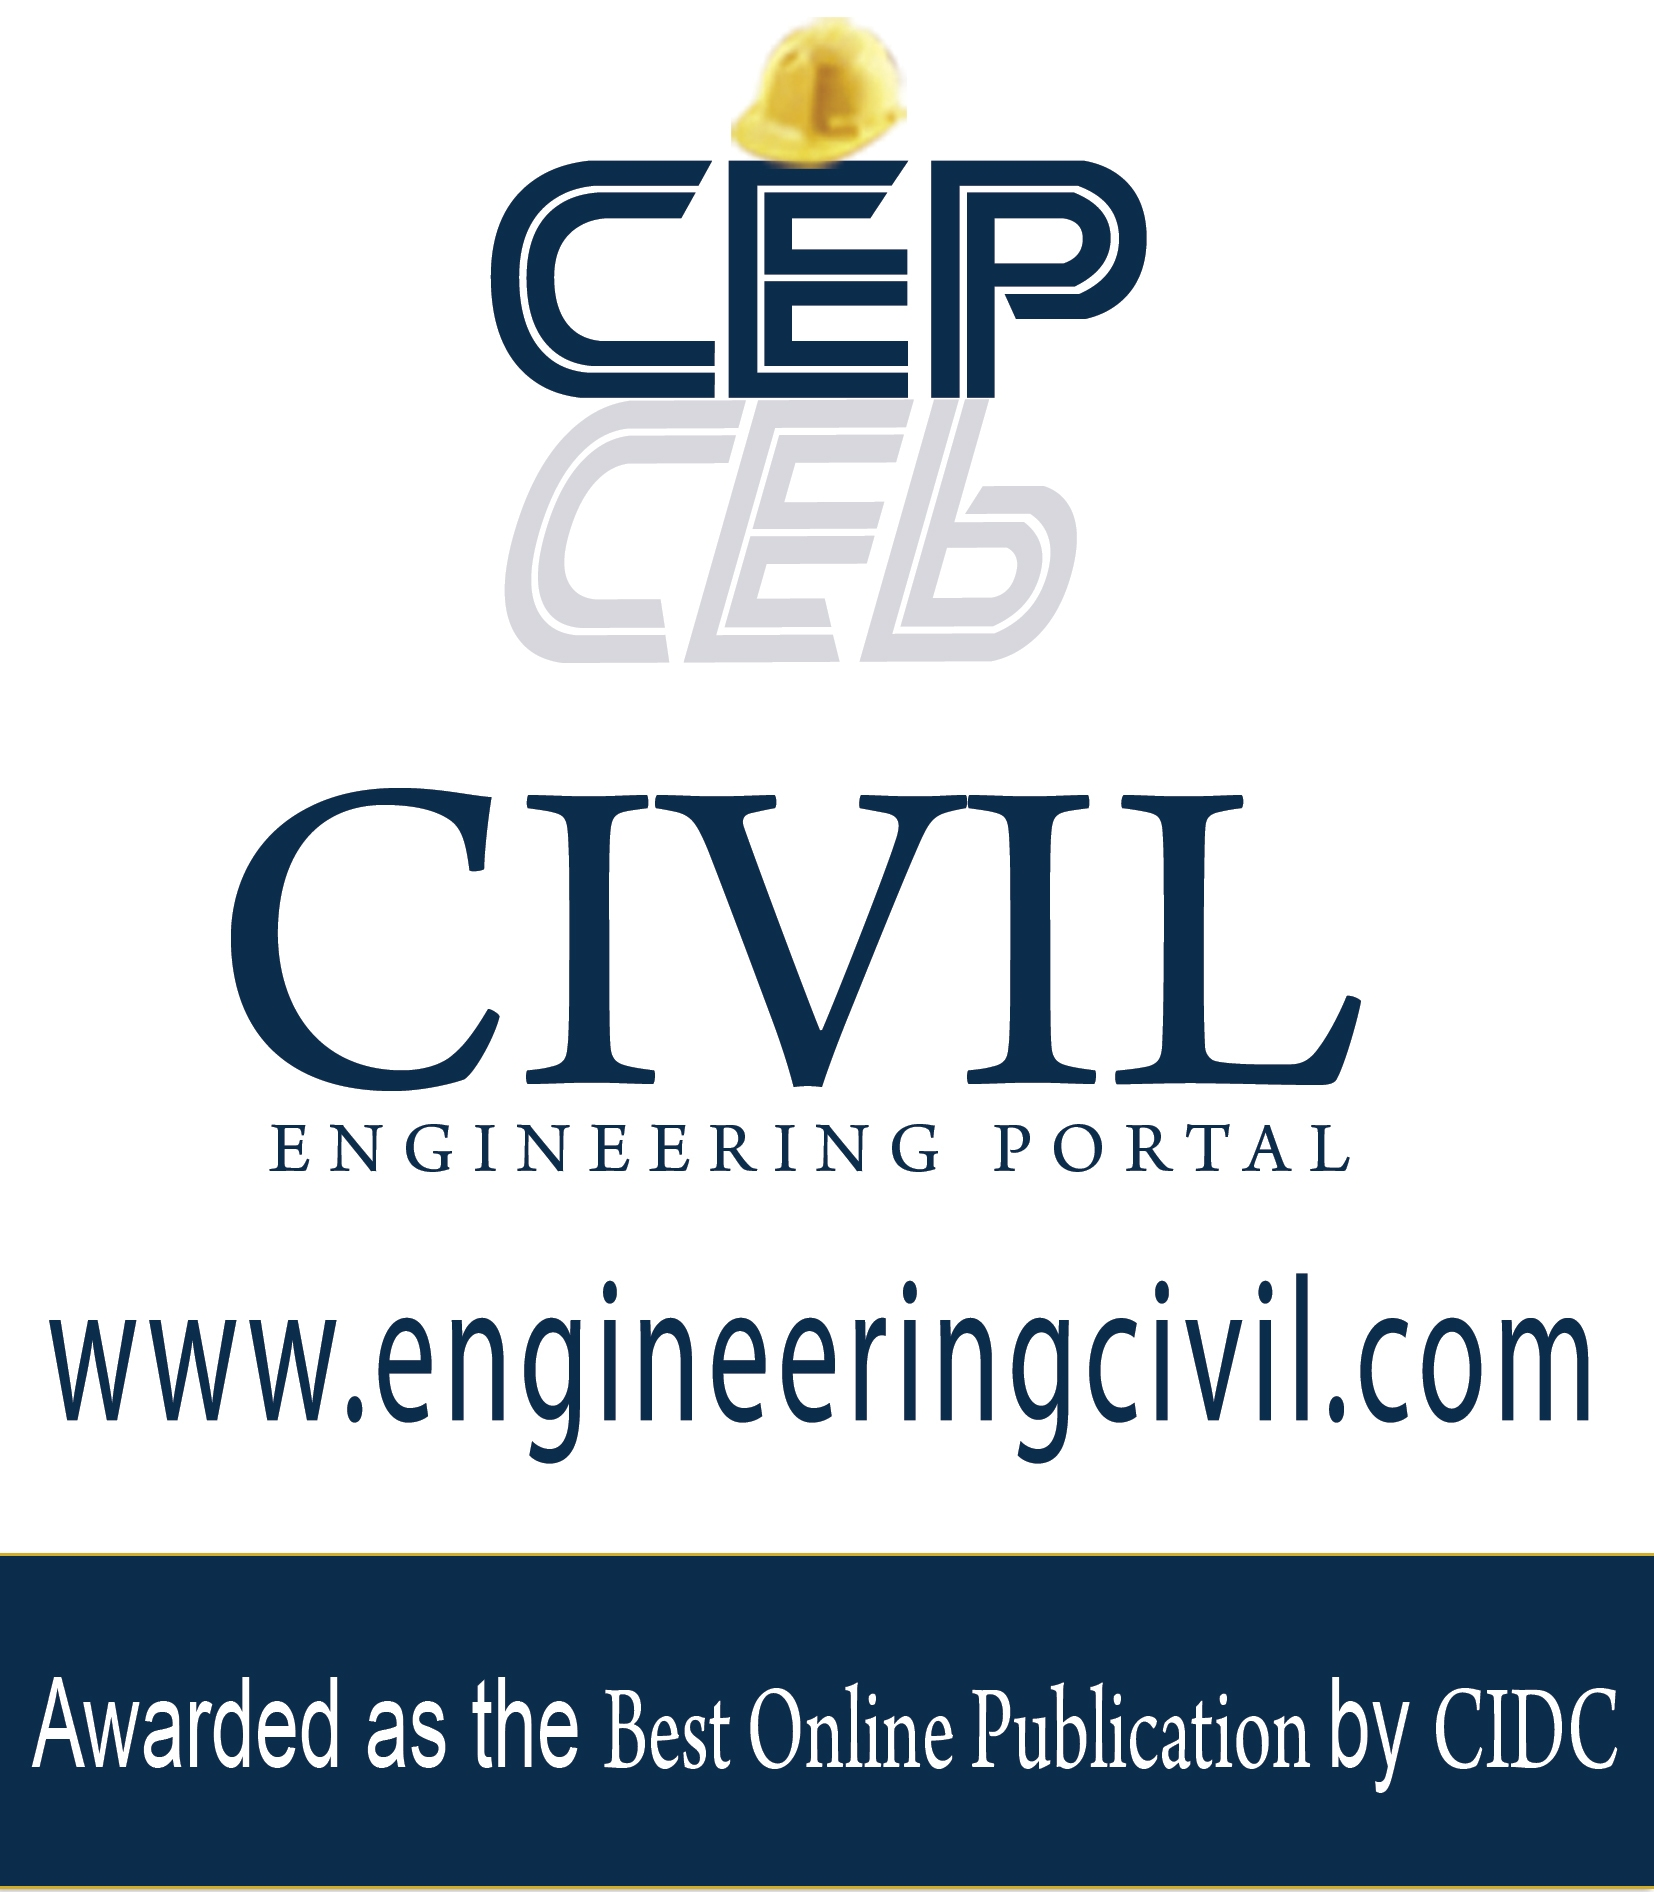 engineeringcivil.com logo